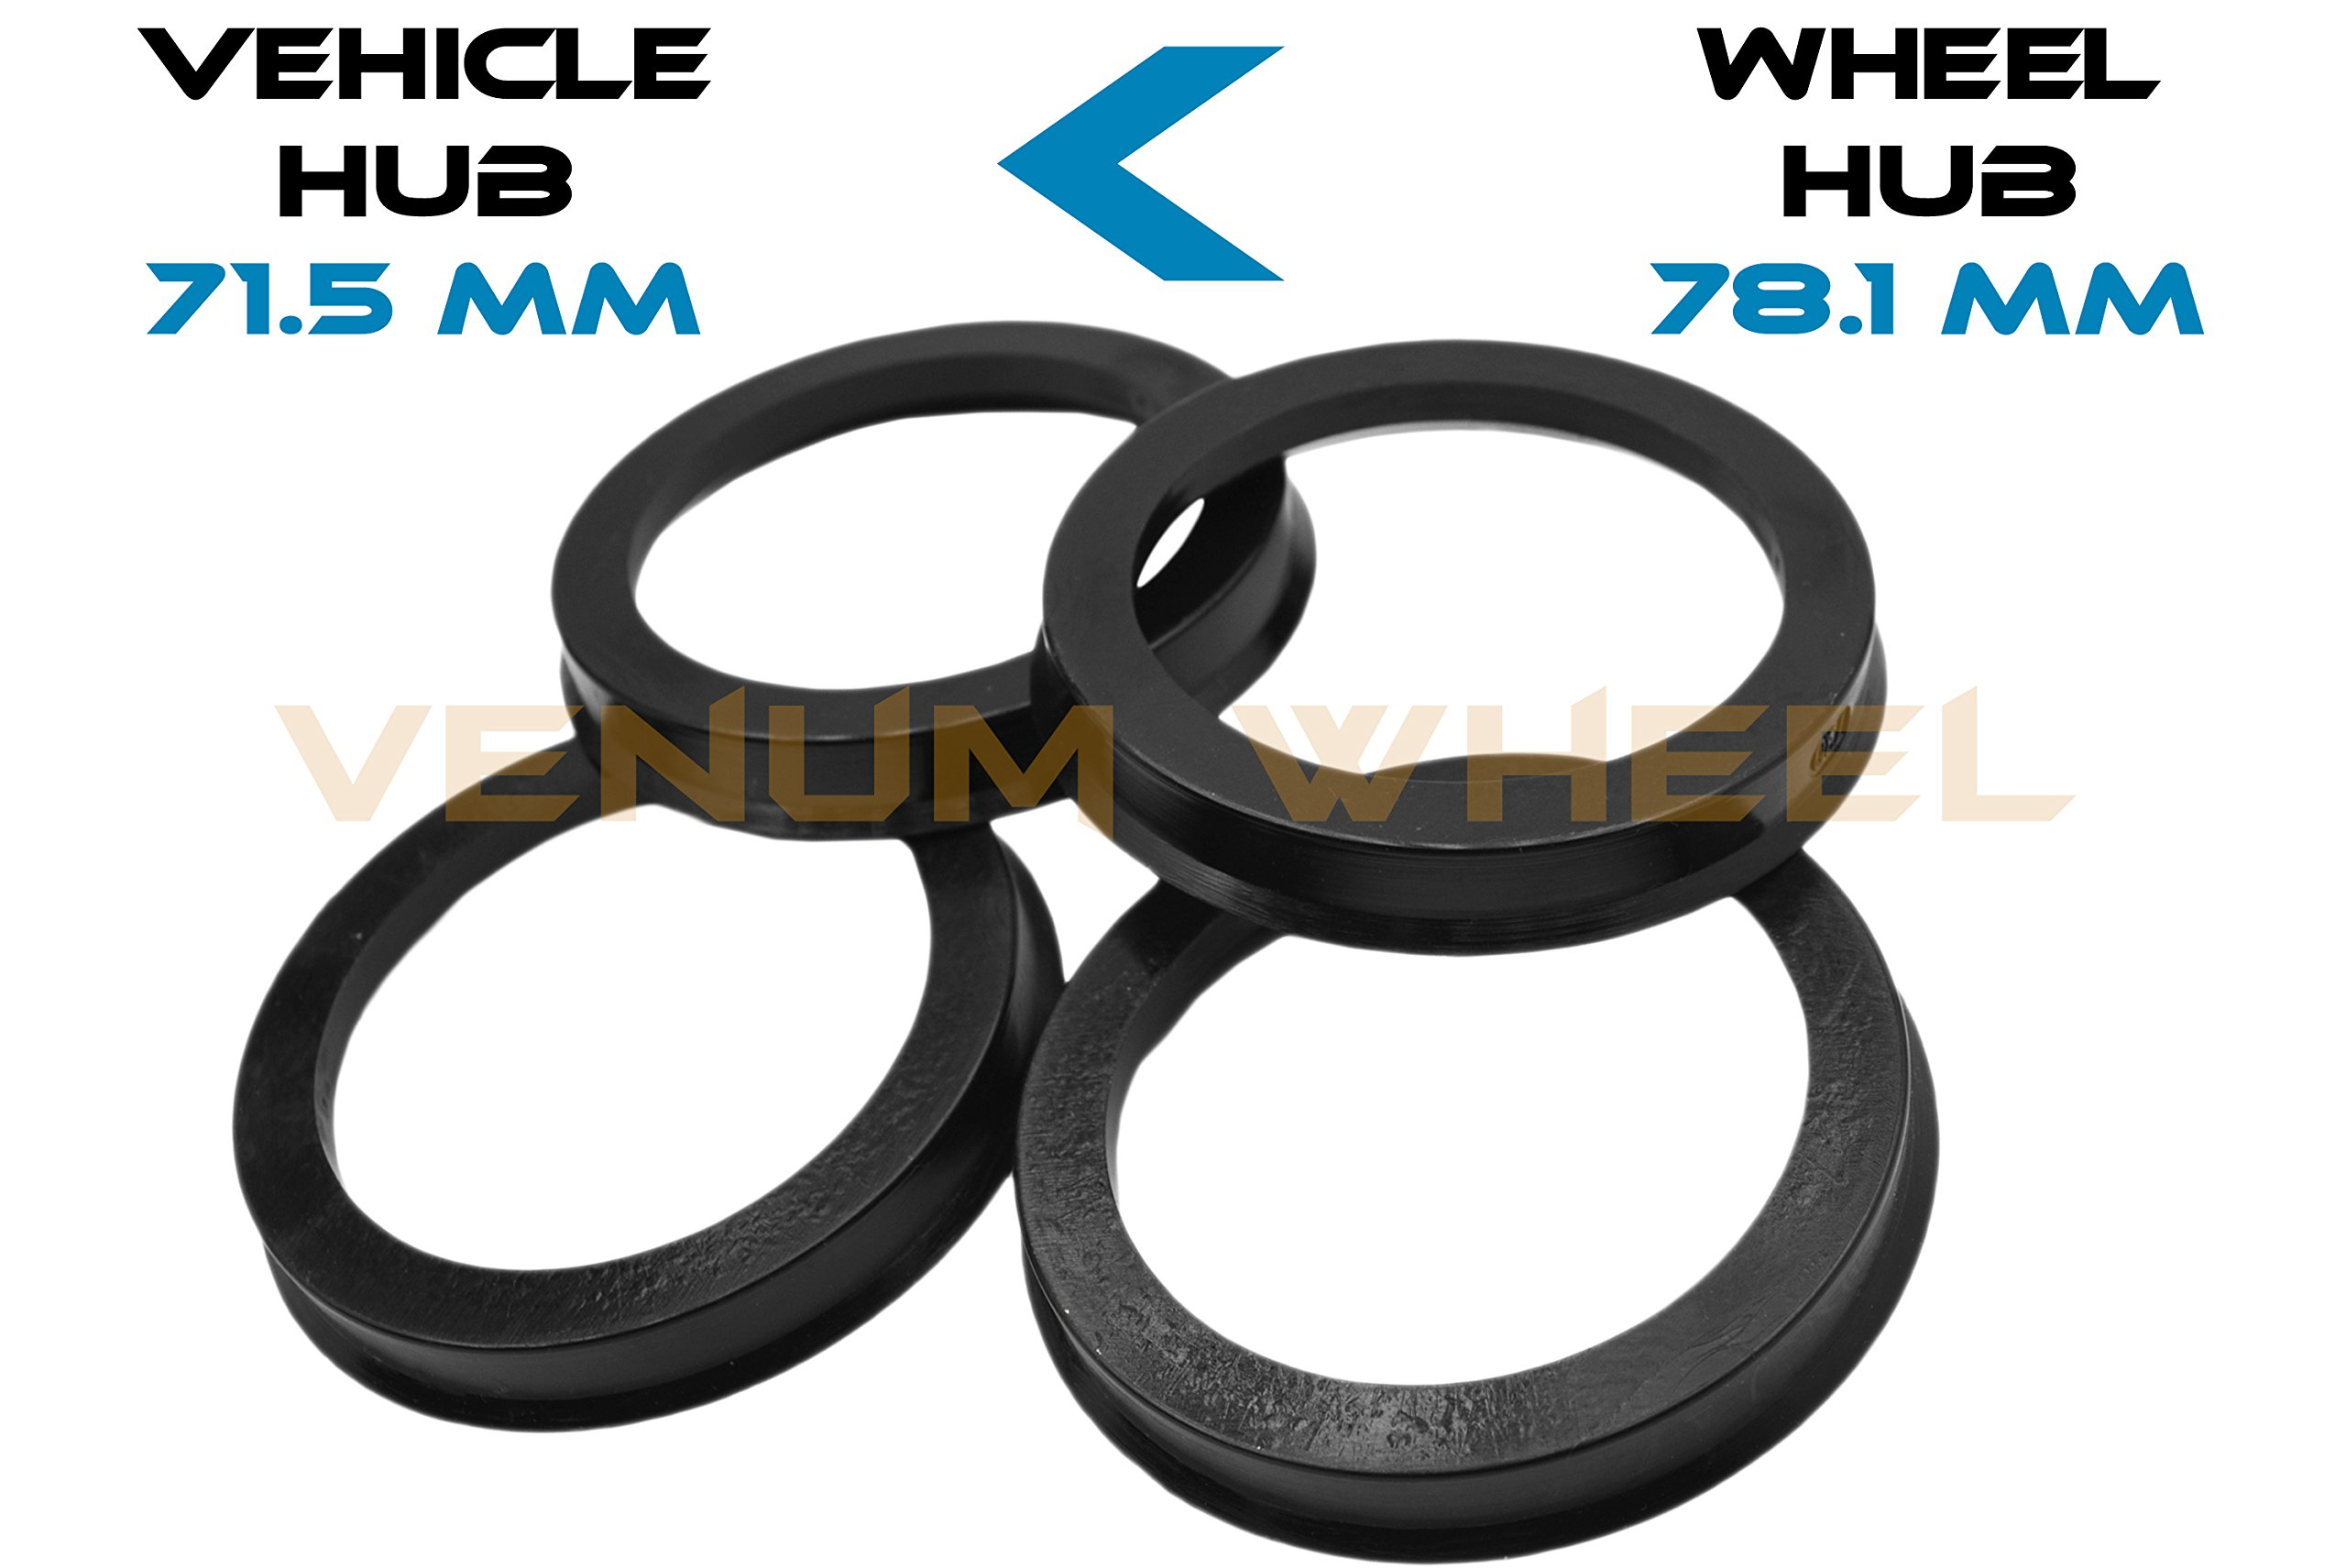 4 Hub Centric Rings 71.5 ID To 78.1 OD Black Polycarbonate Material ( Vehicle 71.5mm to Wheel 78.1mm)